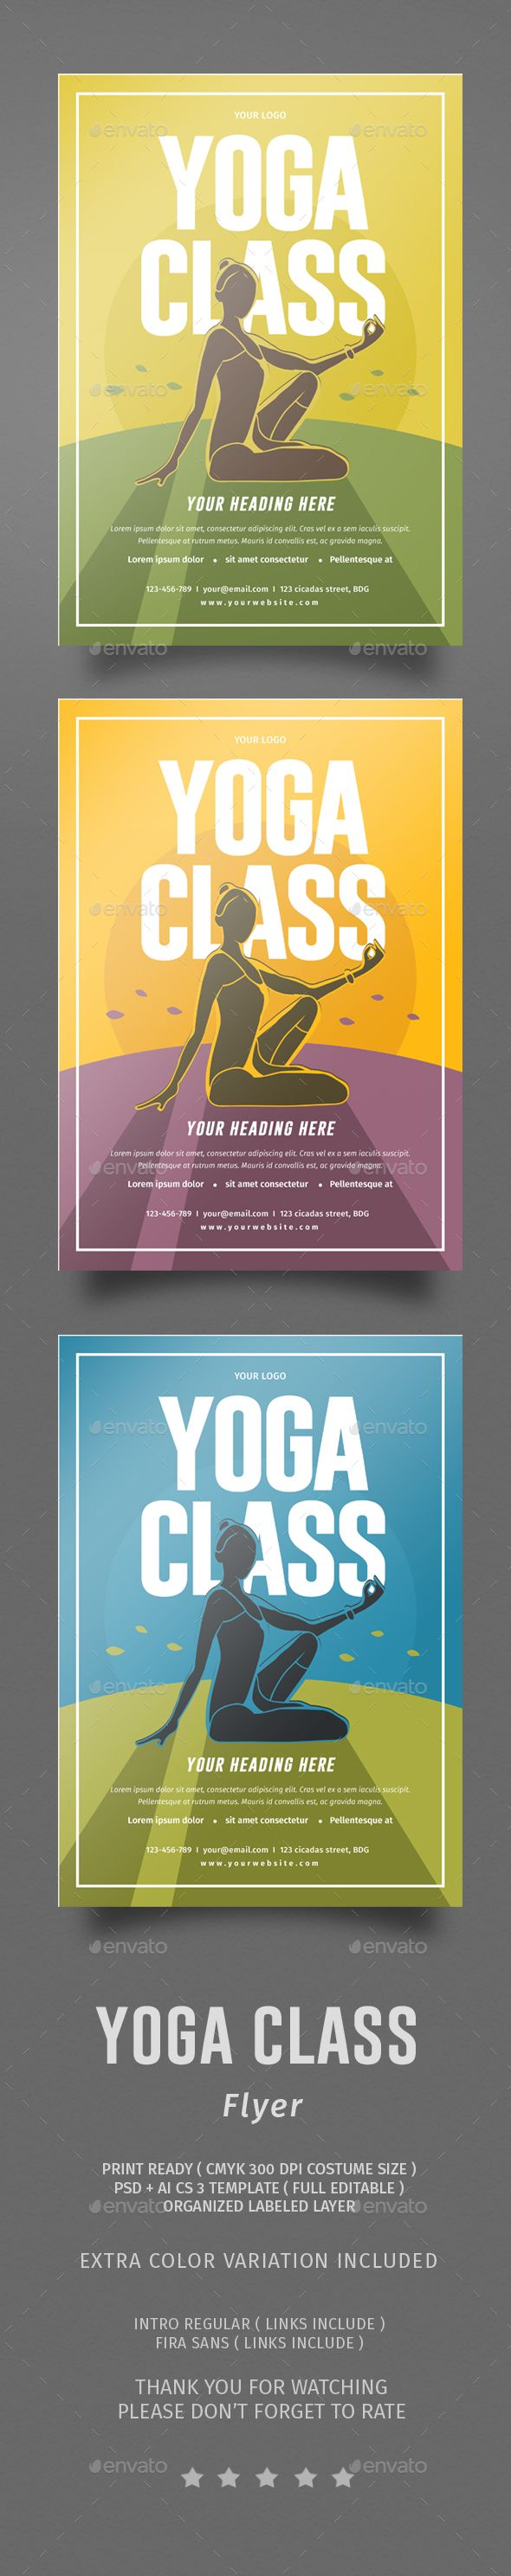 yoga class flyer flyers yoga and psd templates. Black Bedroom Furniture Sets. Home Design Ideas